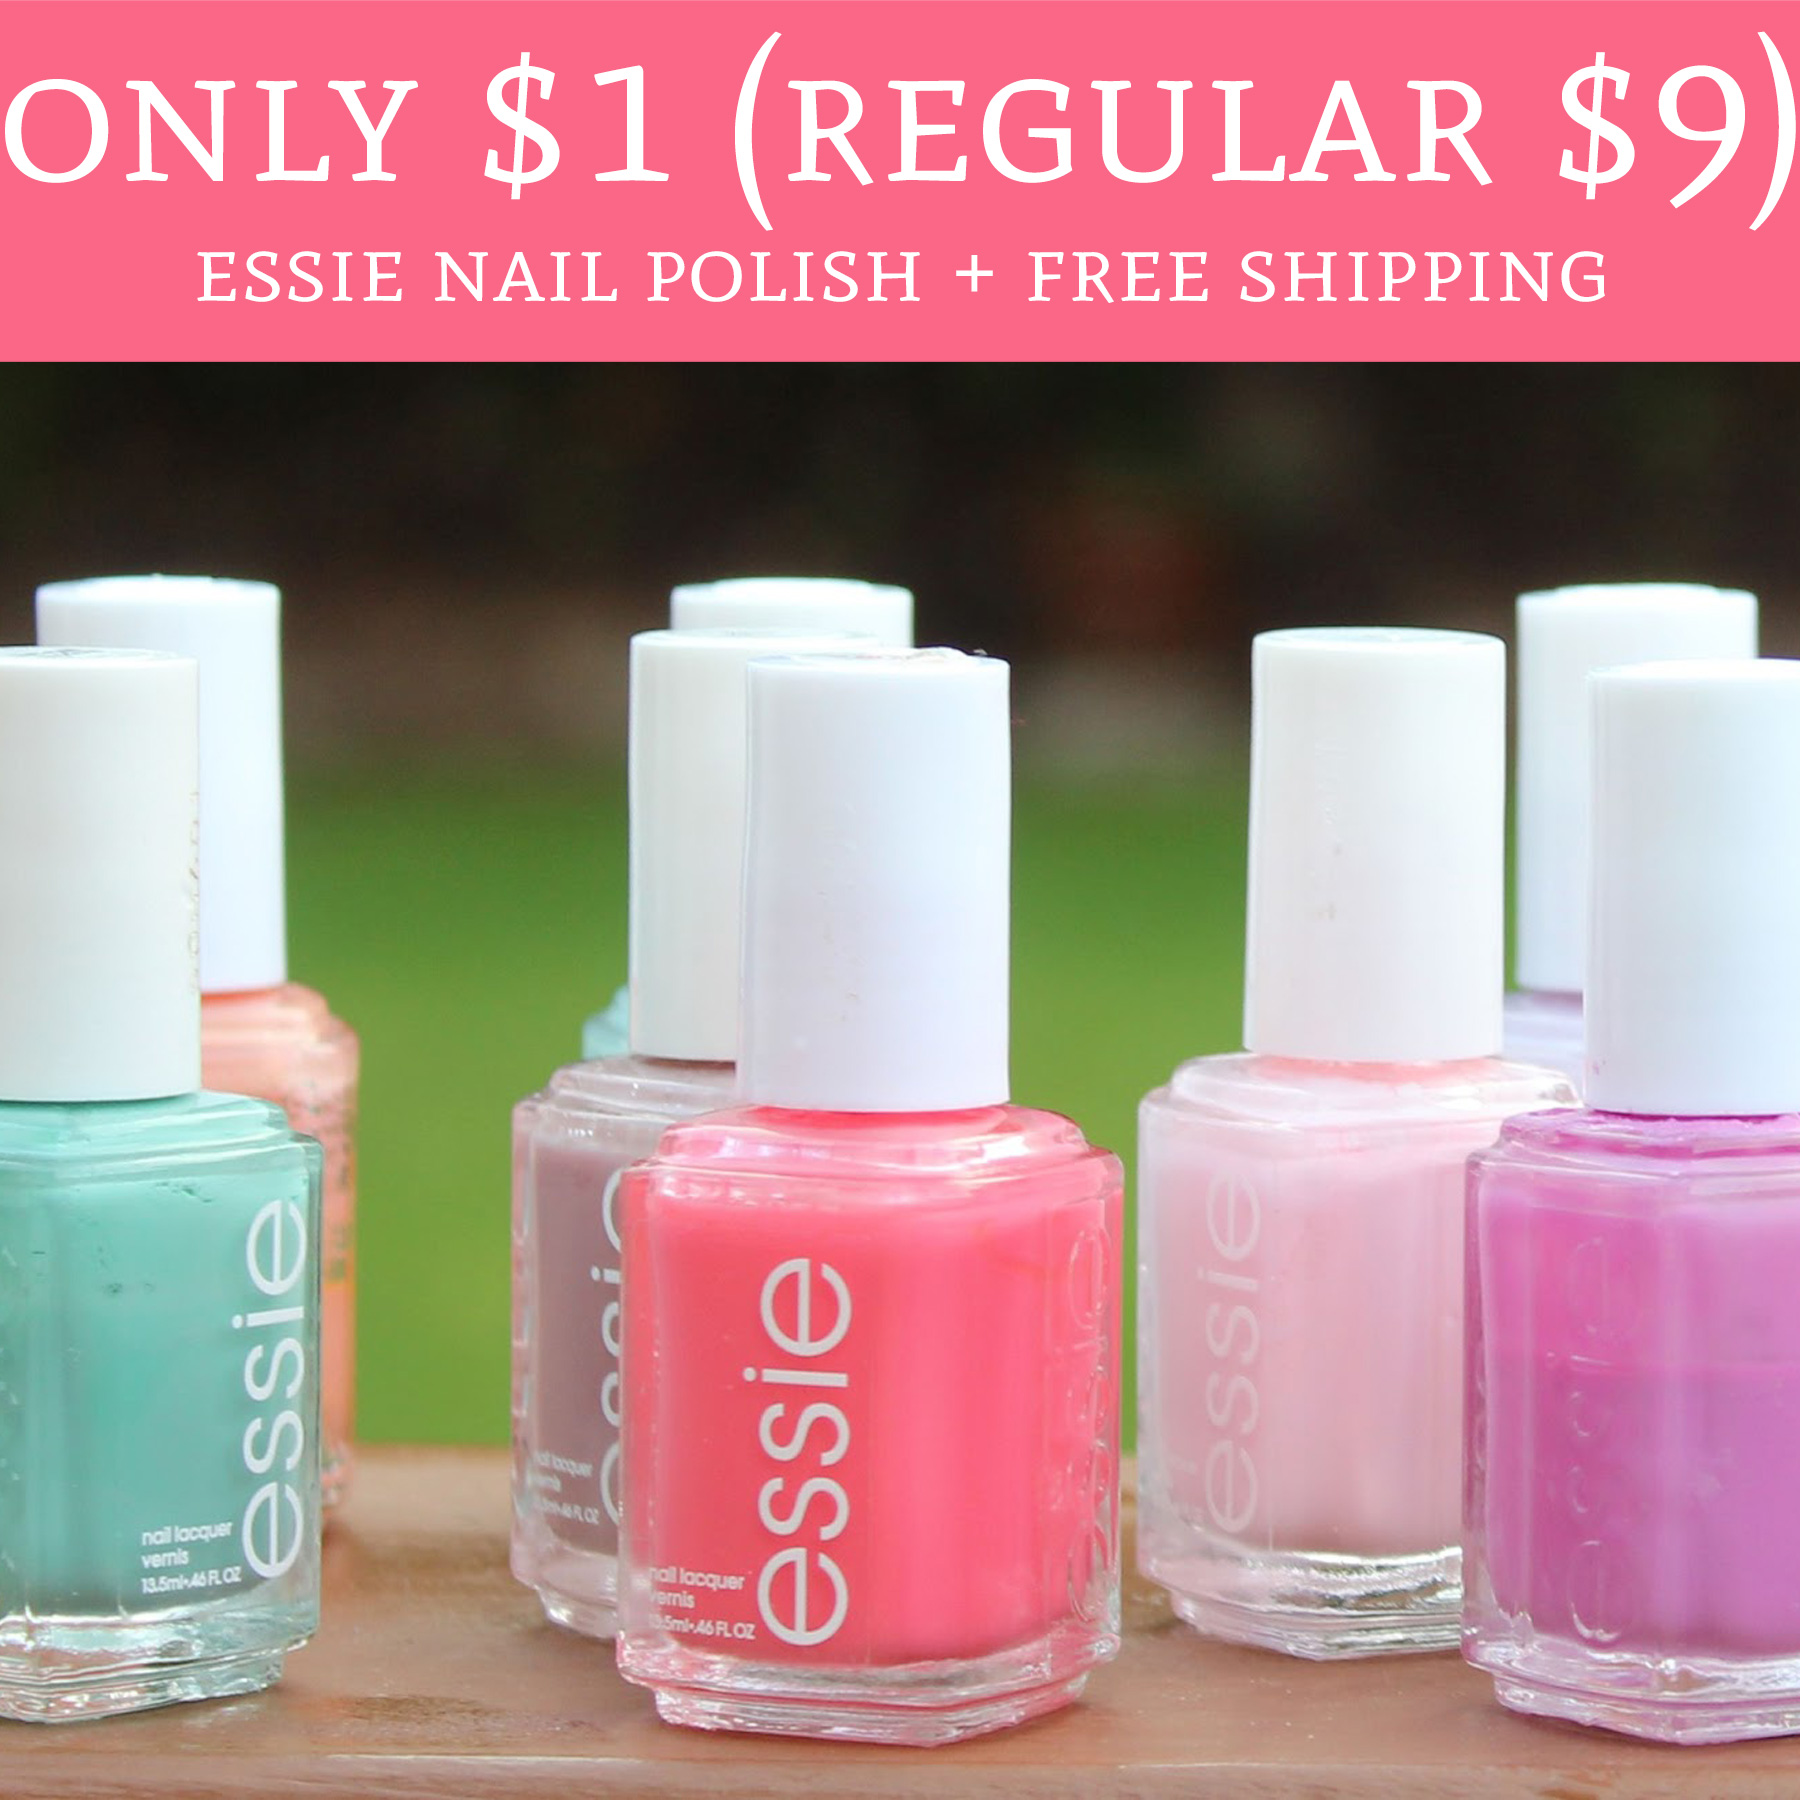 HOT! Only $1 (Regular $9) Essie Nail Polish + Free Shipping - Deal ...